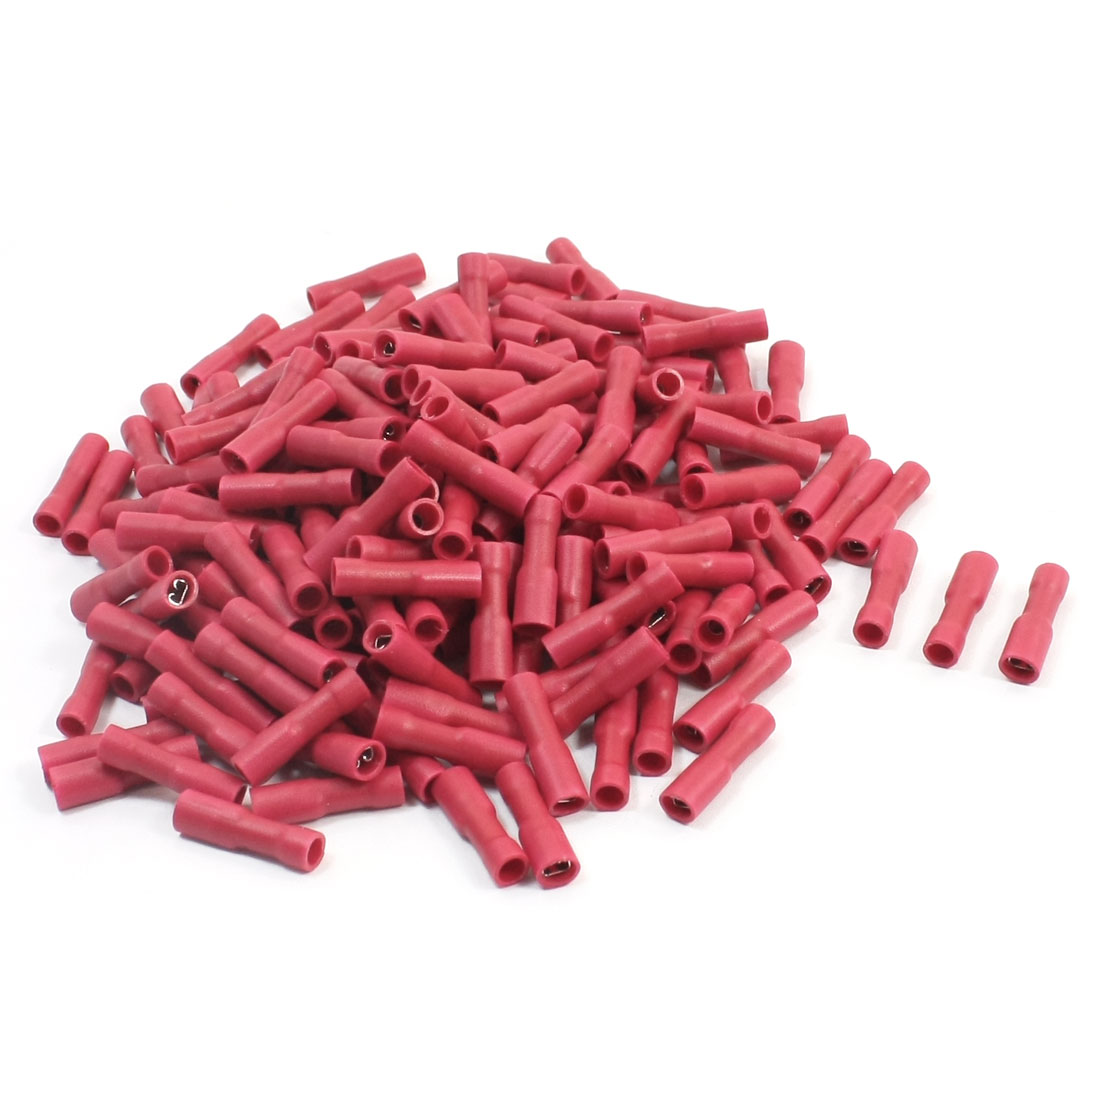 200 Pcs FDFD1-110 22-16AWG Wire Red Plastic Coated Female Spade Connector Insulated Crimp Terminal